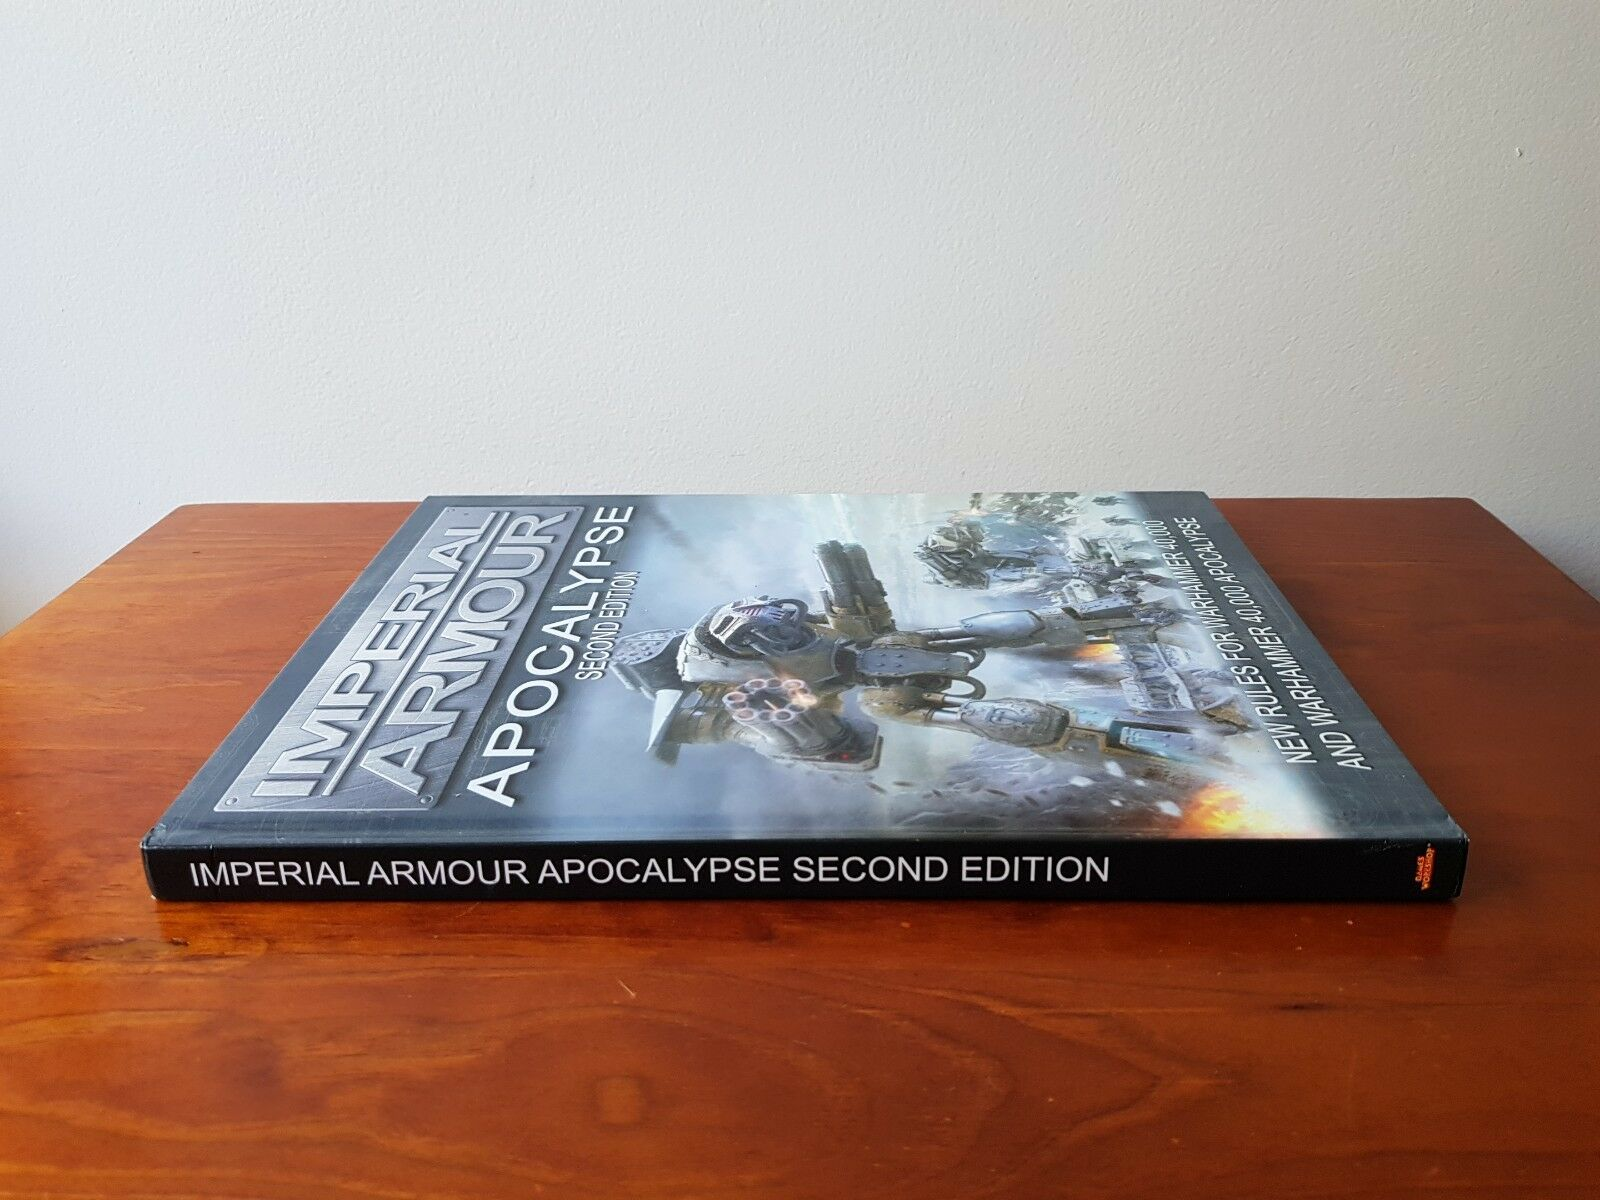 Warhammer 40,000 RPG 40k Imperial Armour Apocalypse 2nd Second Edition RPG 40,000 Rule Book bae031